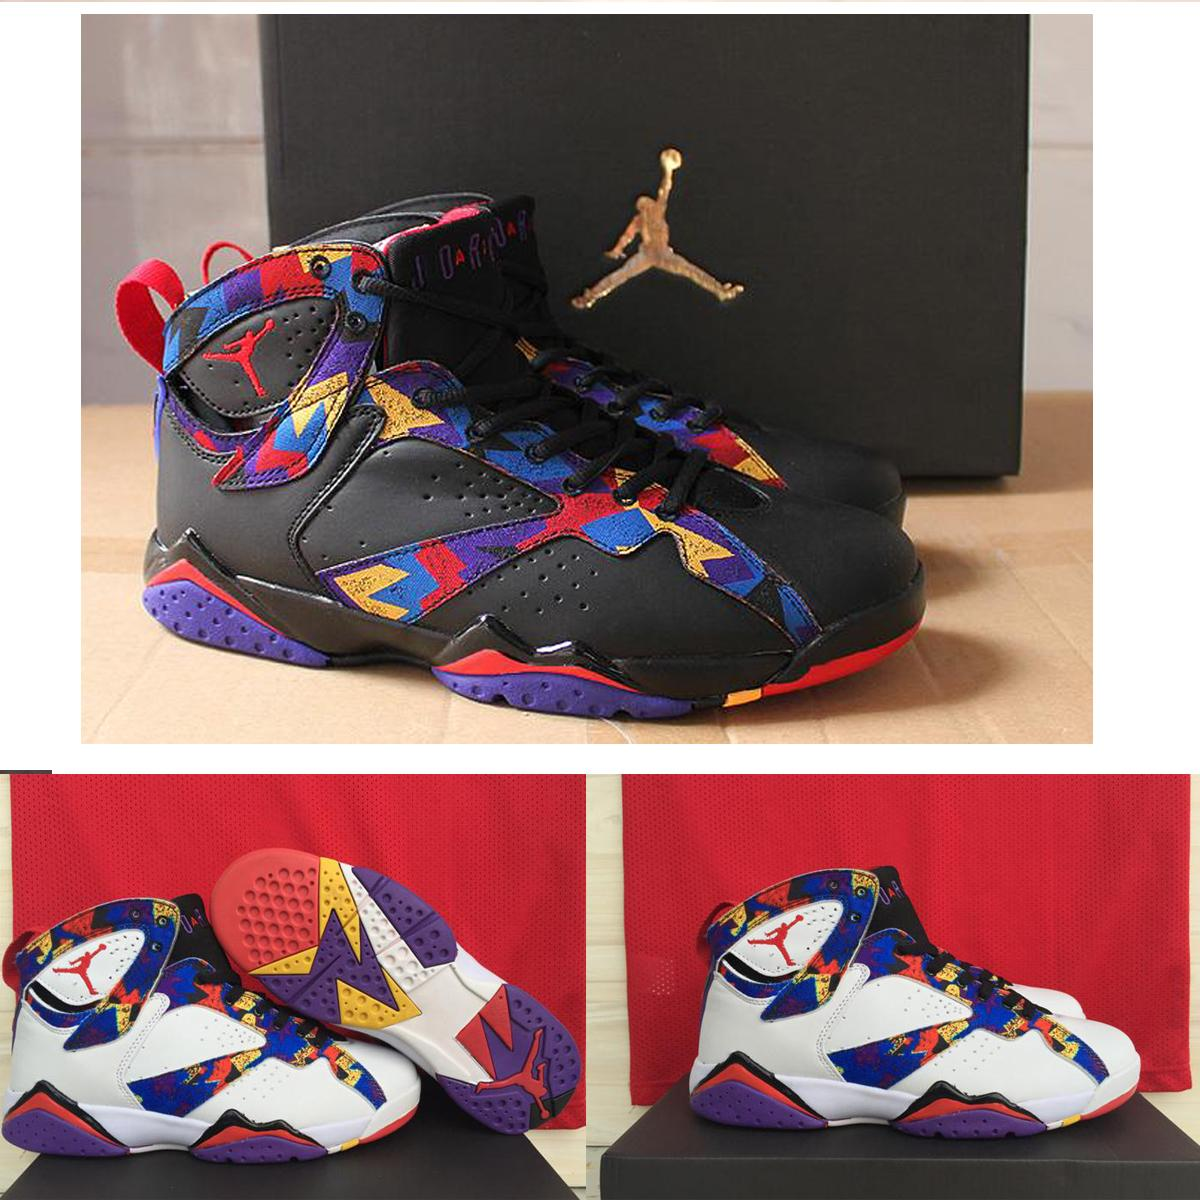 296f5bd3c8f0 Nike Air Jordan 7 Olympic Retro Mens Basketball Shoes